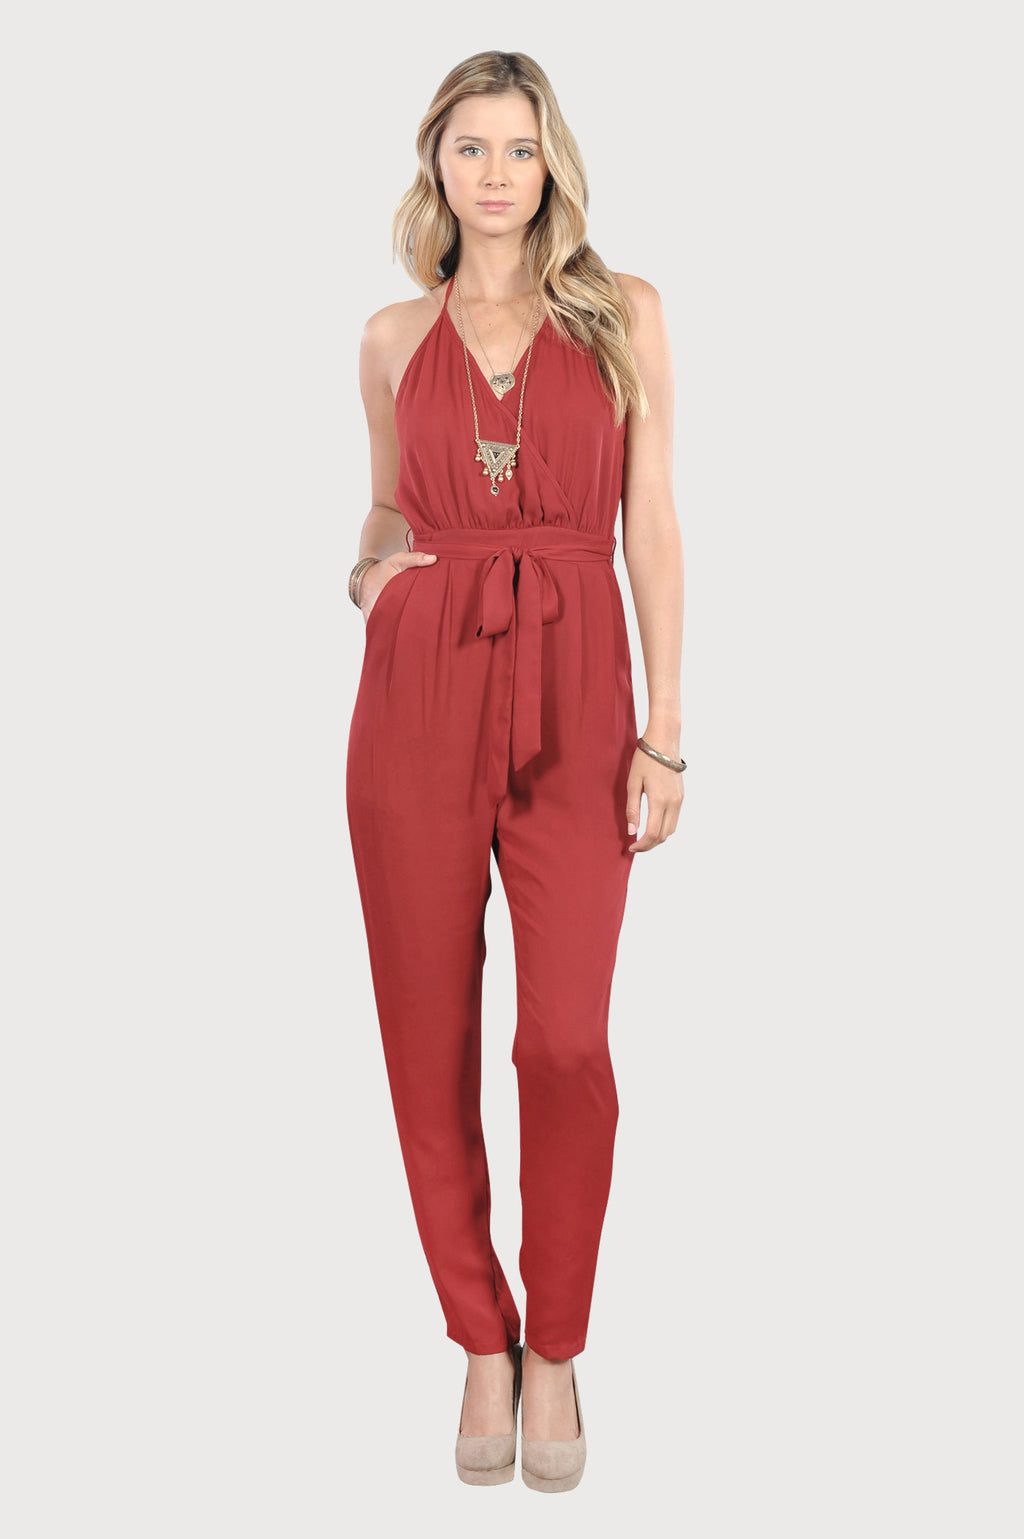 Women's Juniors Red Sexy Spaghetti Strap Halter Summer Beach Trip Romper Jumpsuit - Fest Threads